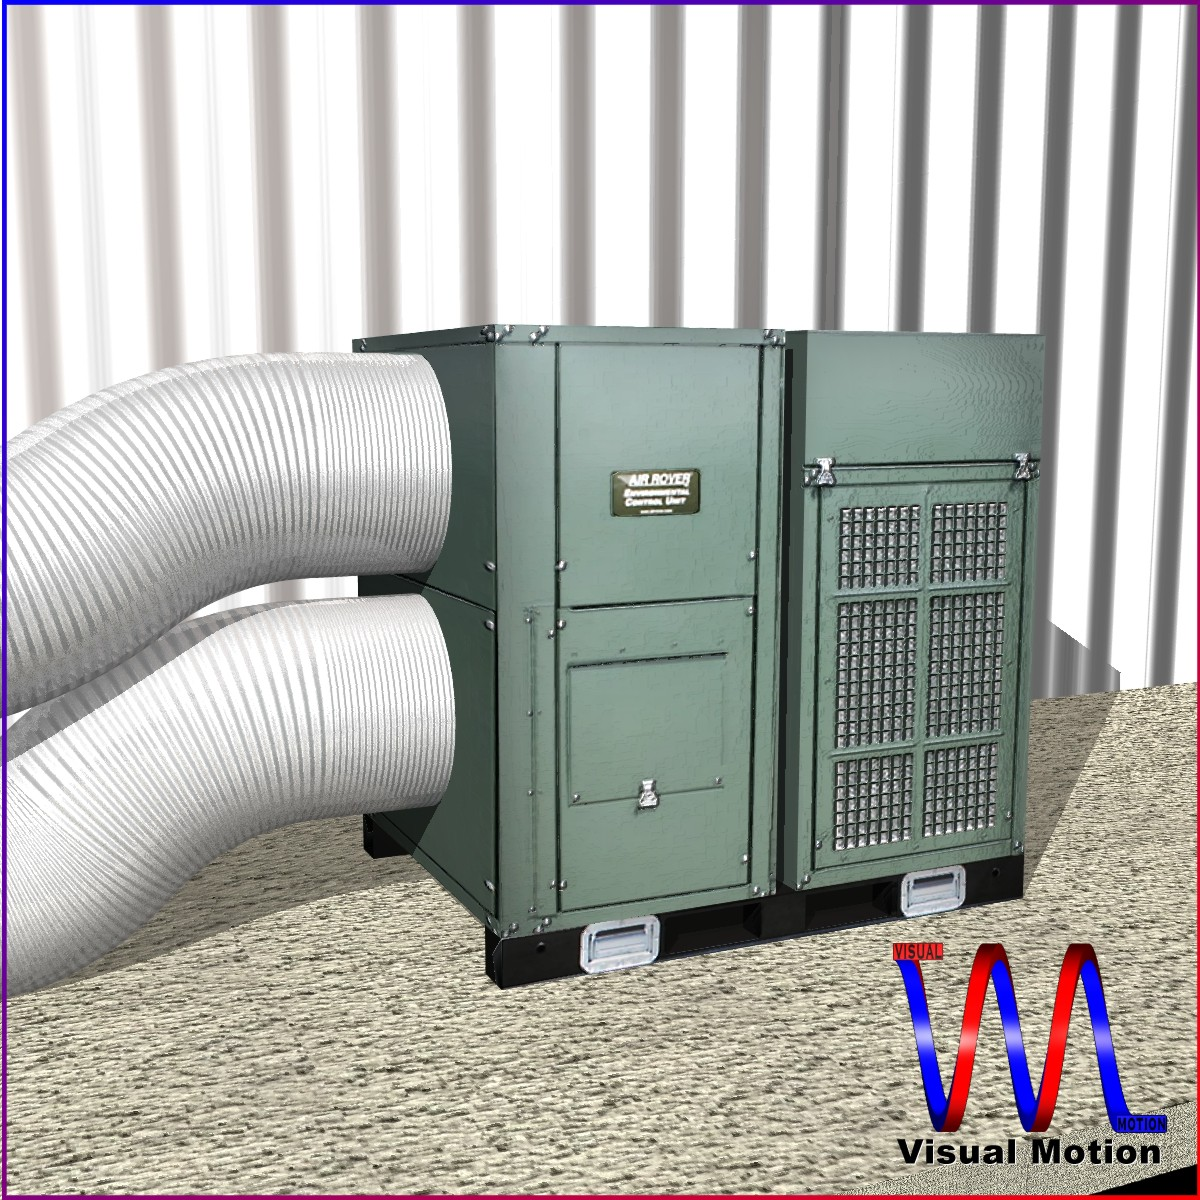 hvac air rover unit 3d model 3ds dxf cob x obj 153091